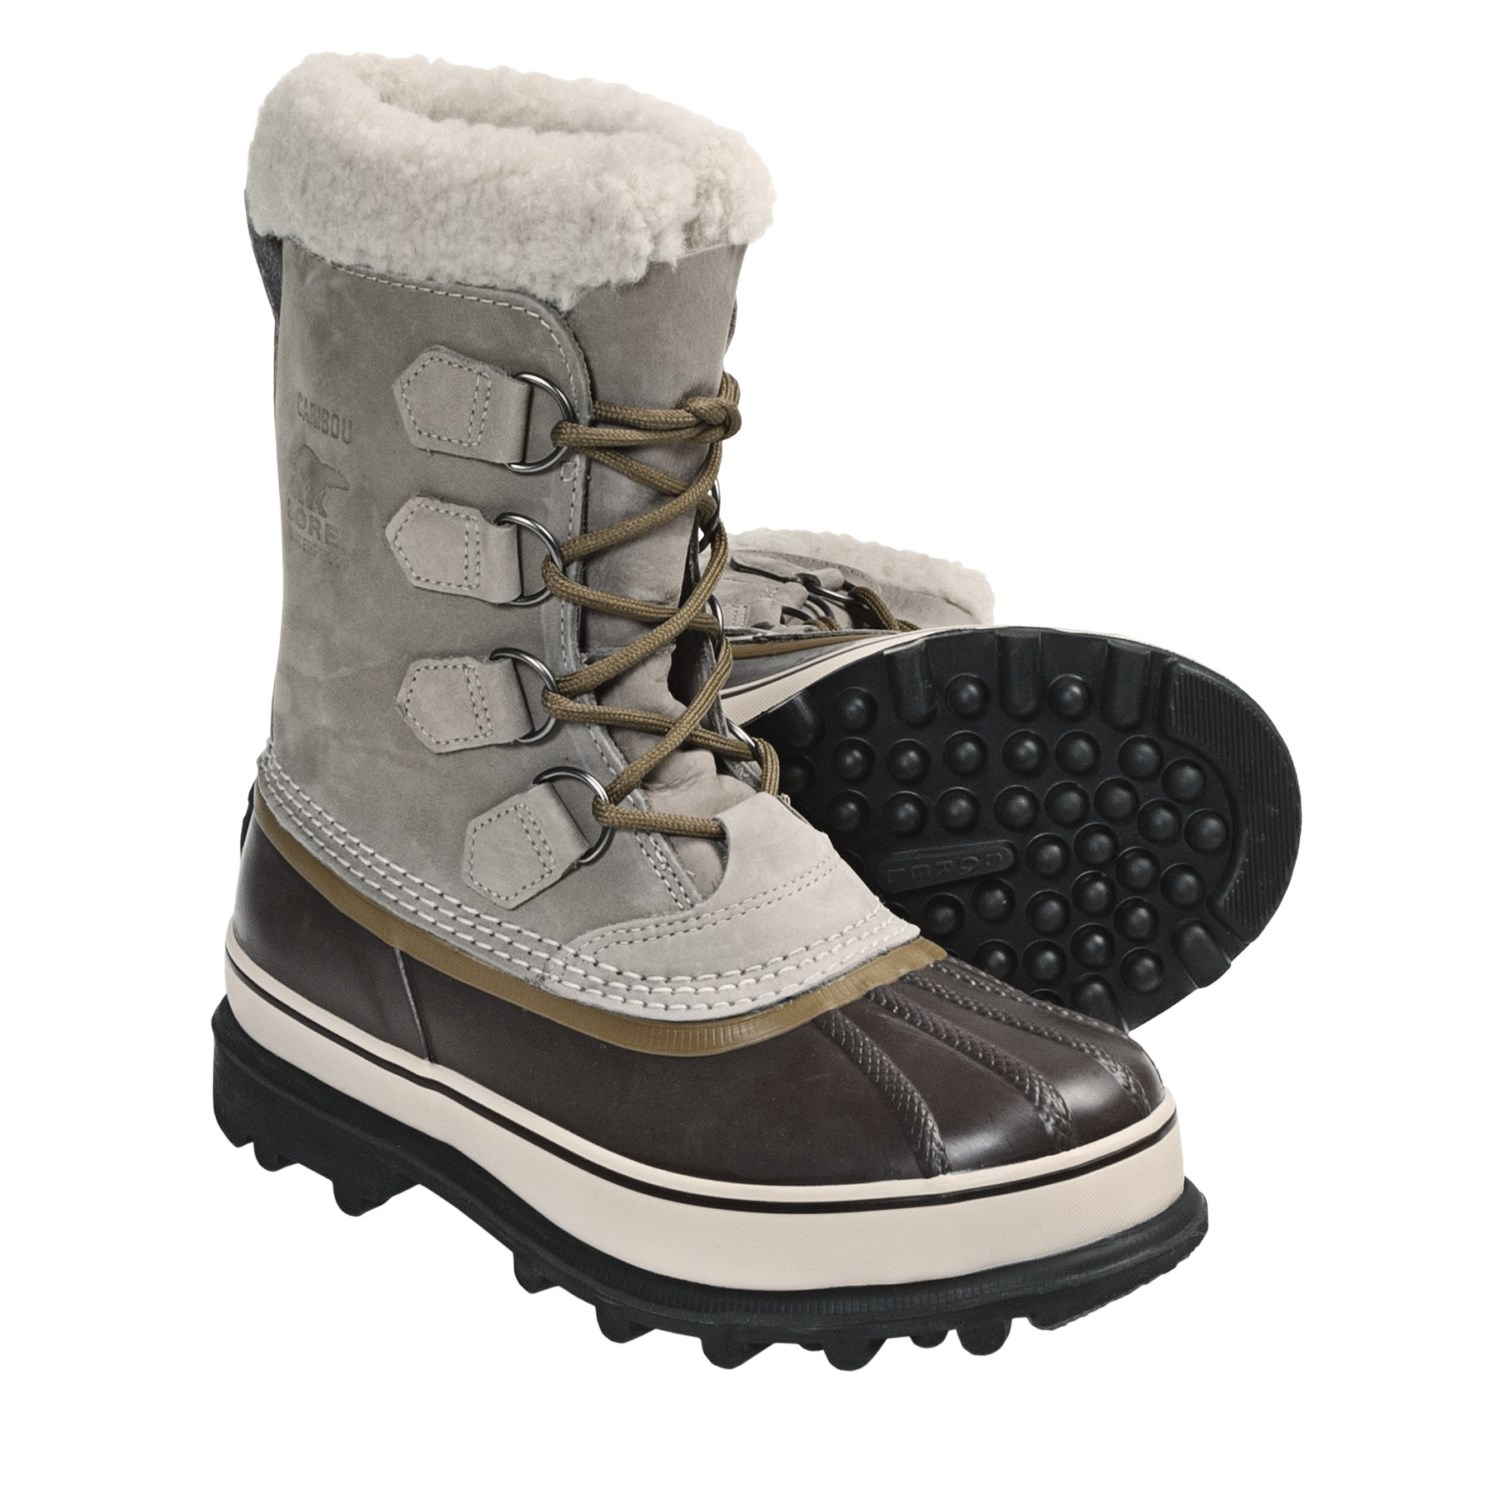 Sorel Caribou Winter Pac Boots For Women In Tusk